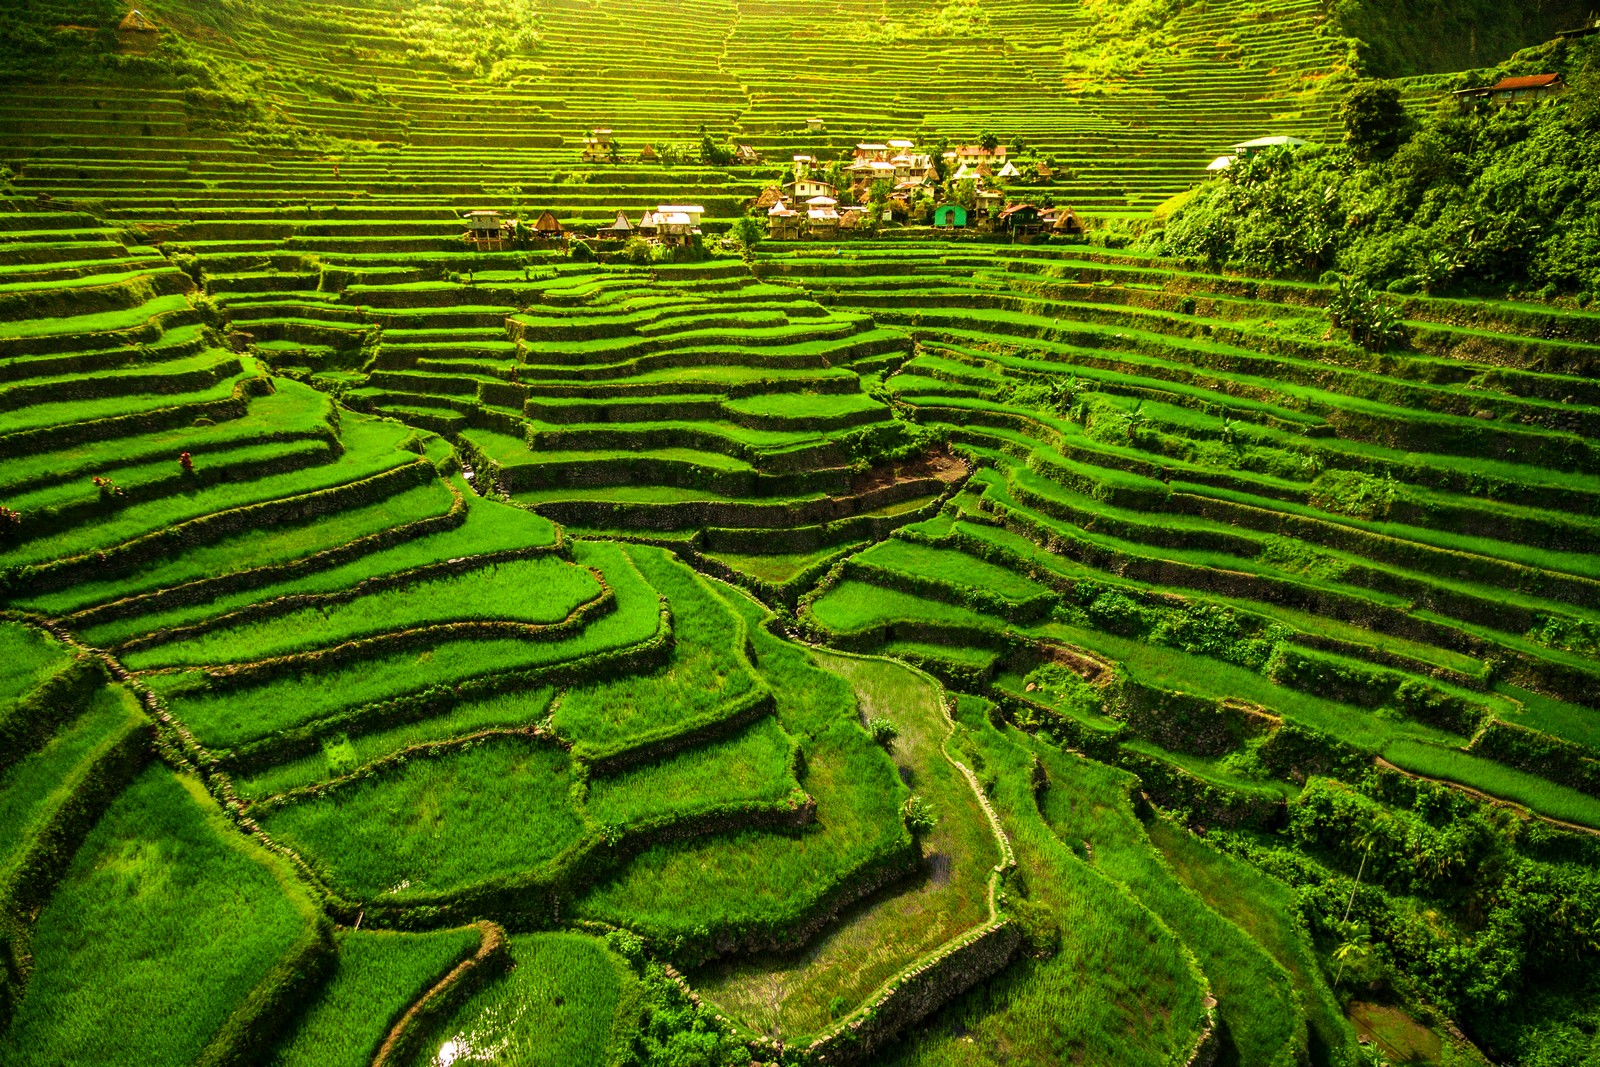 Banaue Full-Day Heritage Tour | With Lunch & Transfers from Baguio City